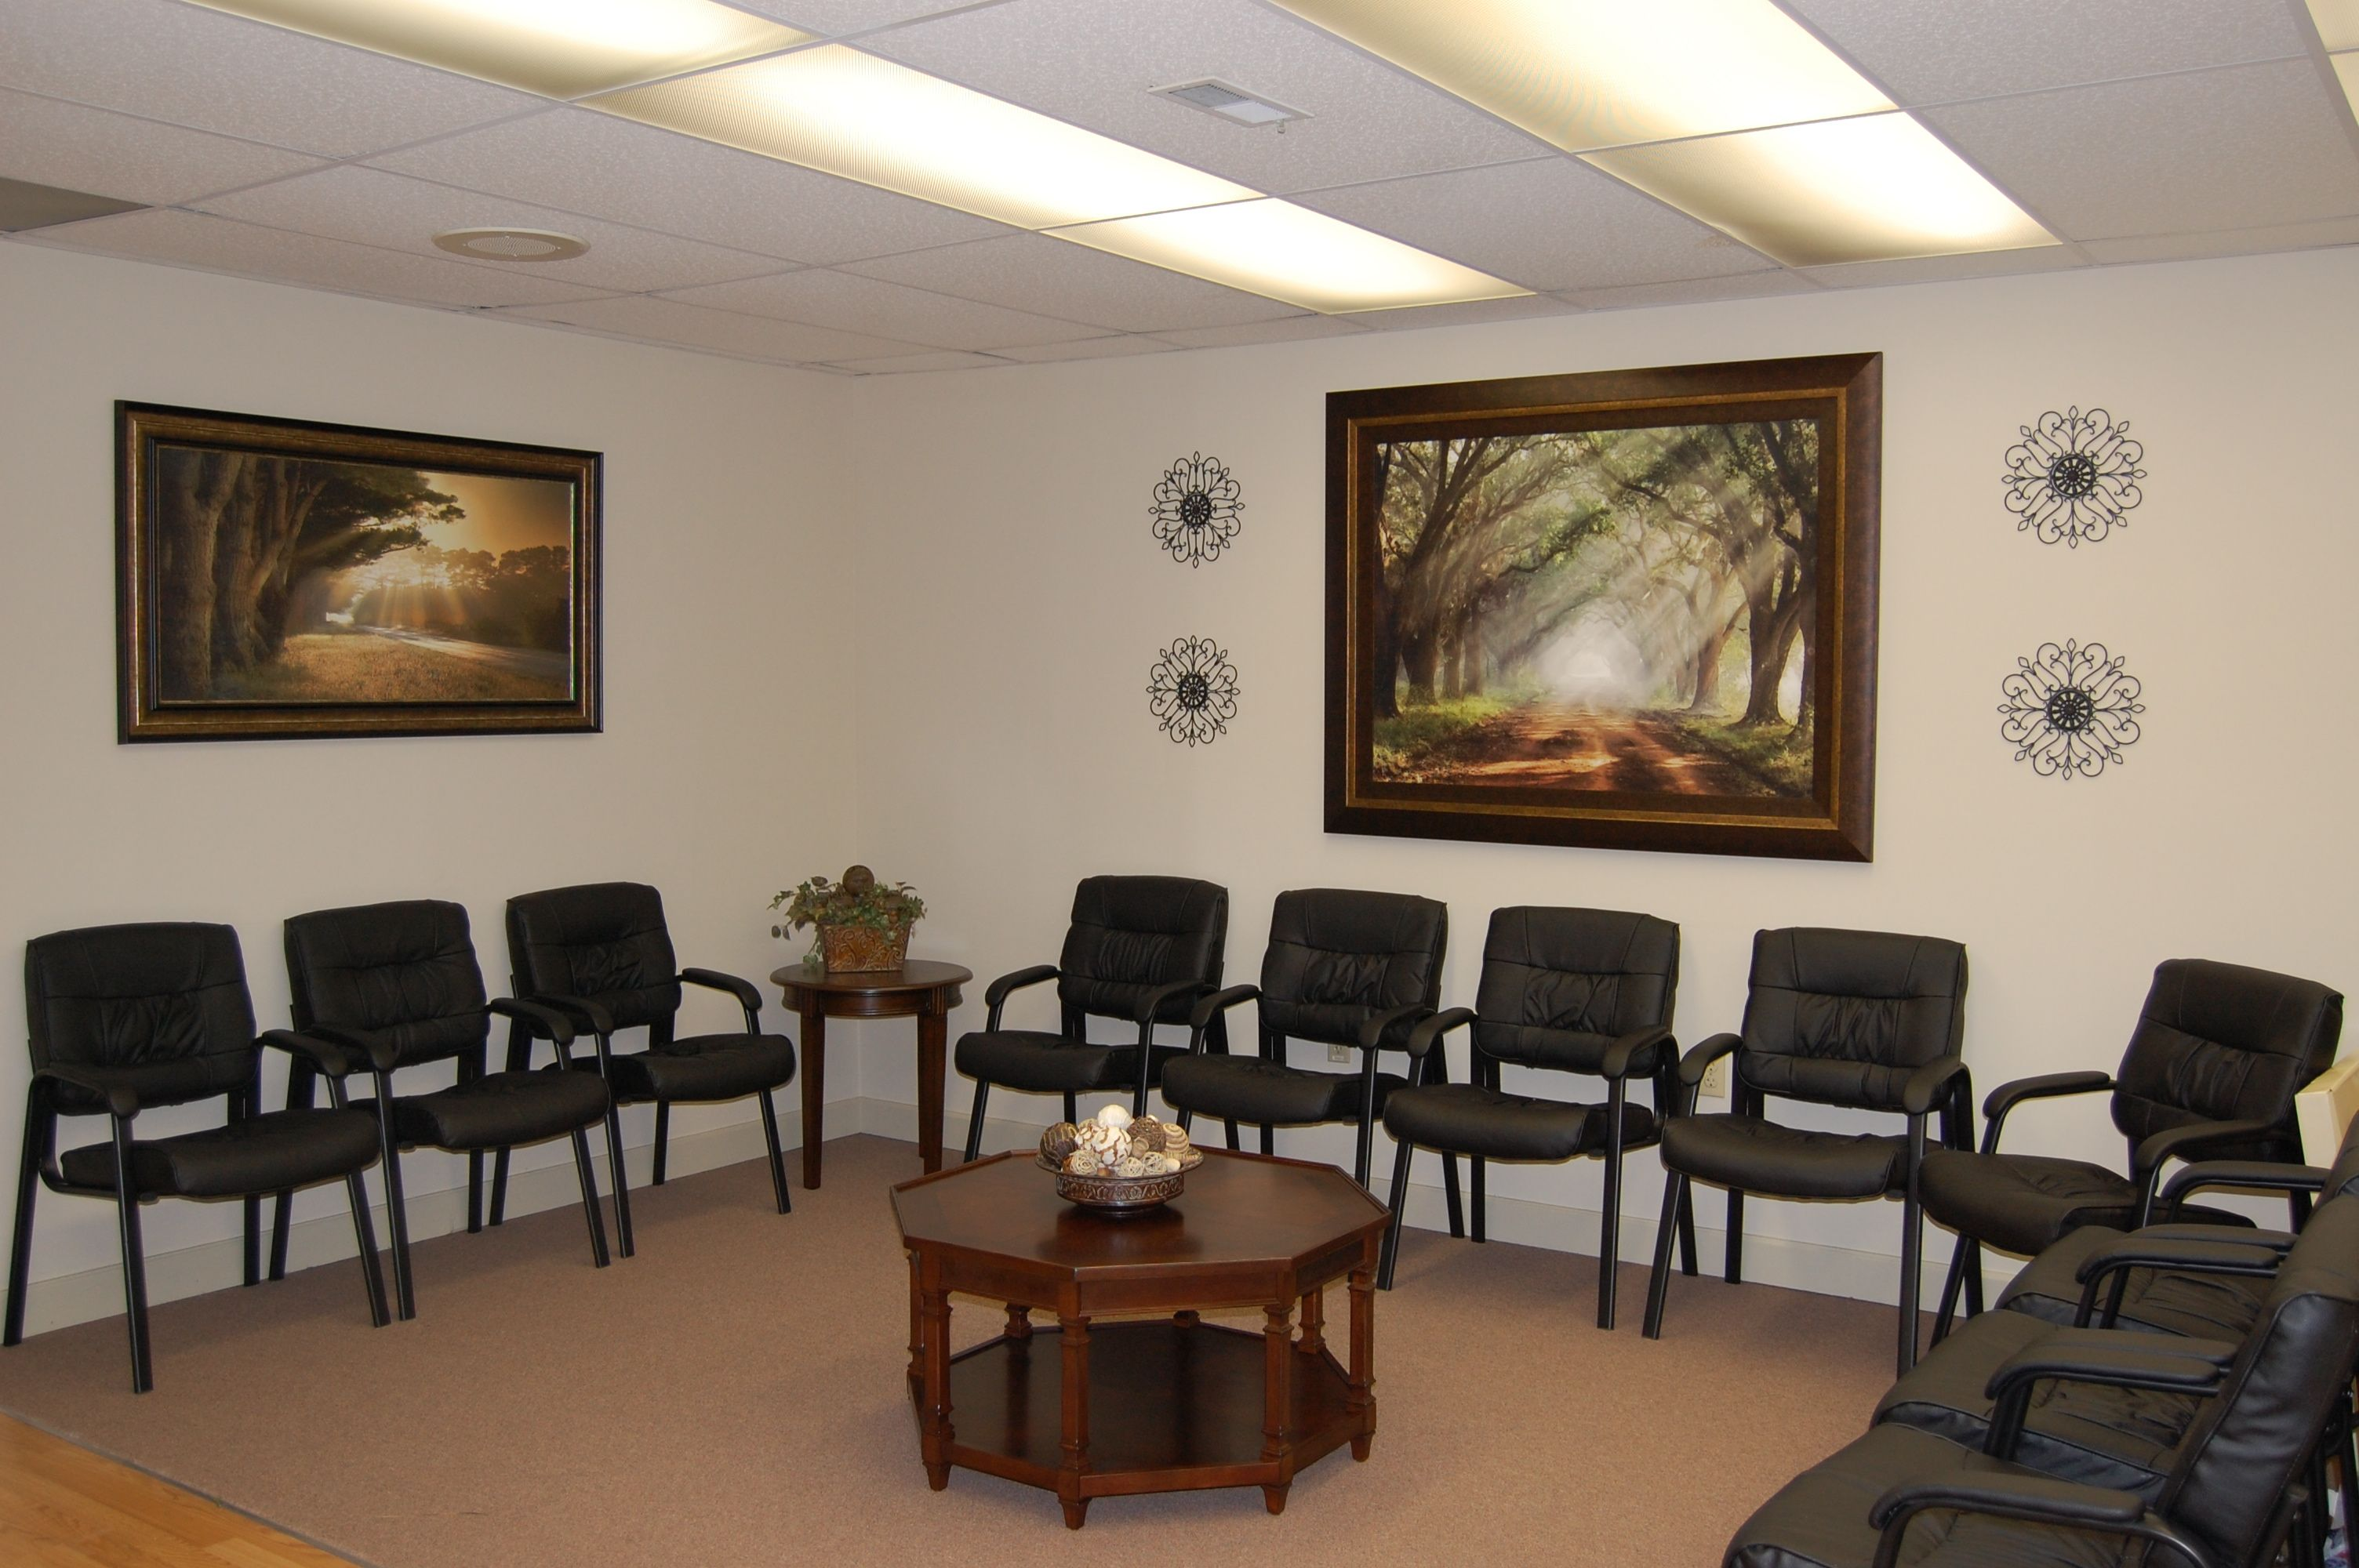 Best Kitchen Gallery: Office Waiting Room Beverage Station Our Waiting Room With A New of Medical Office Waiting Room Design  on rachelxblog.com